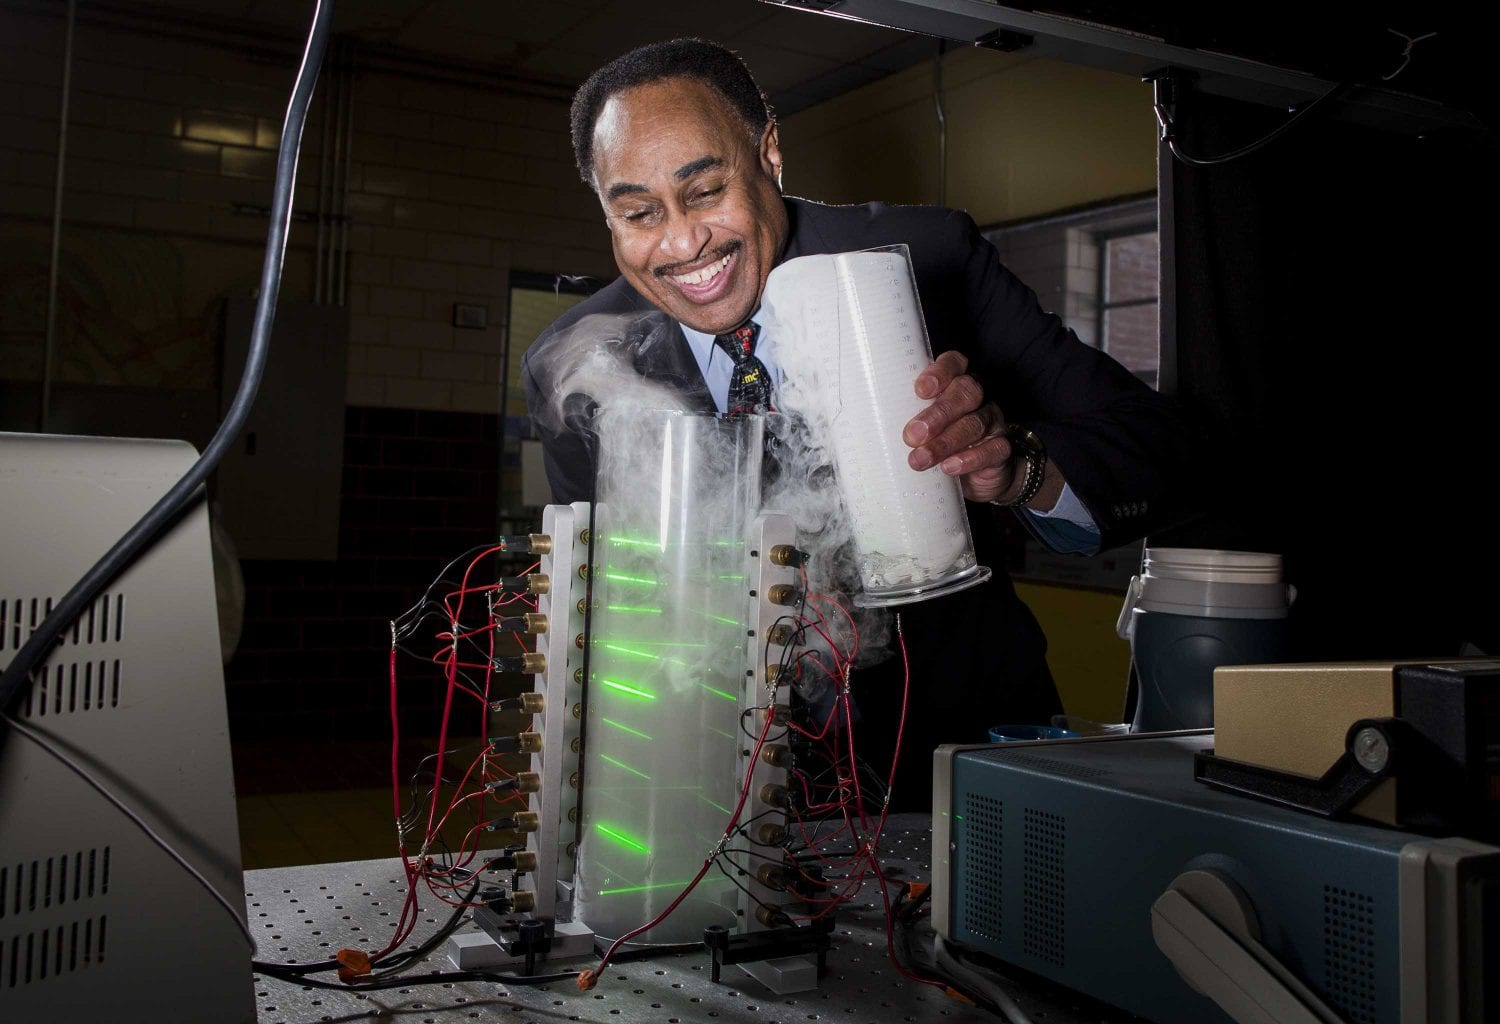 Ronald Mallett and his small prototype of a time machine with lasers. Credit: CNN